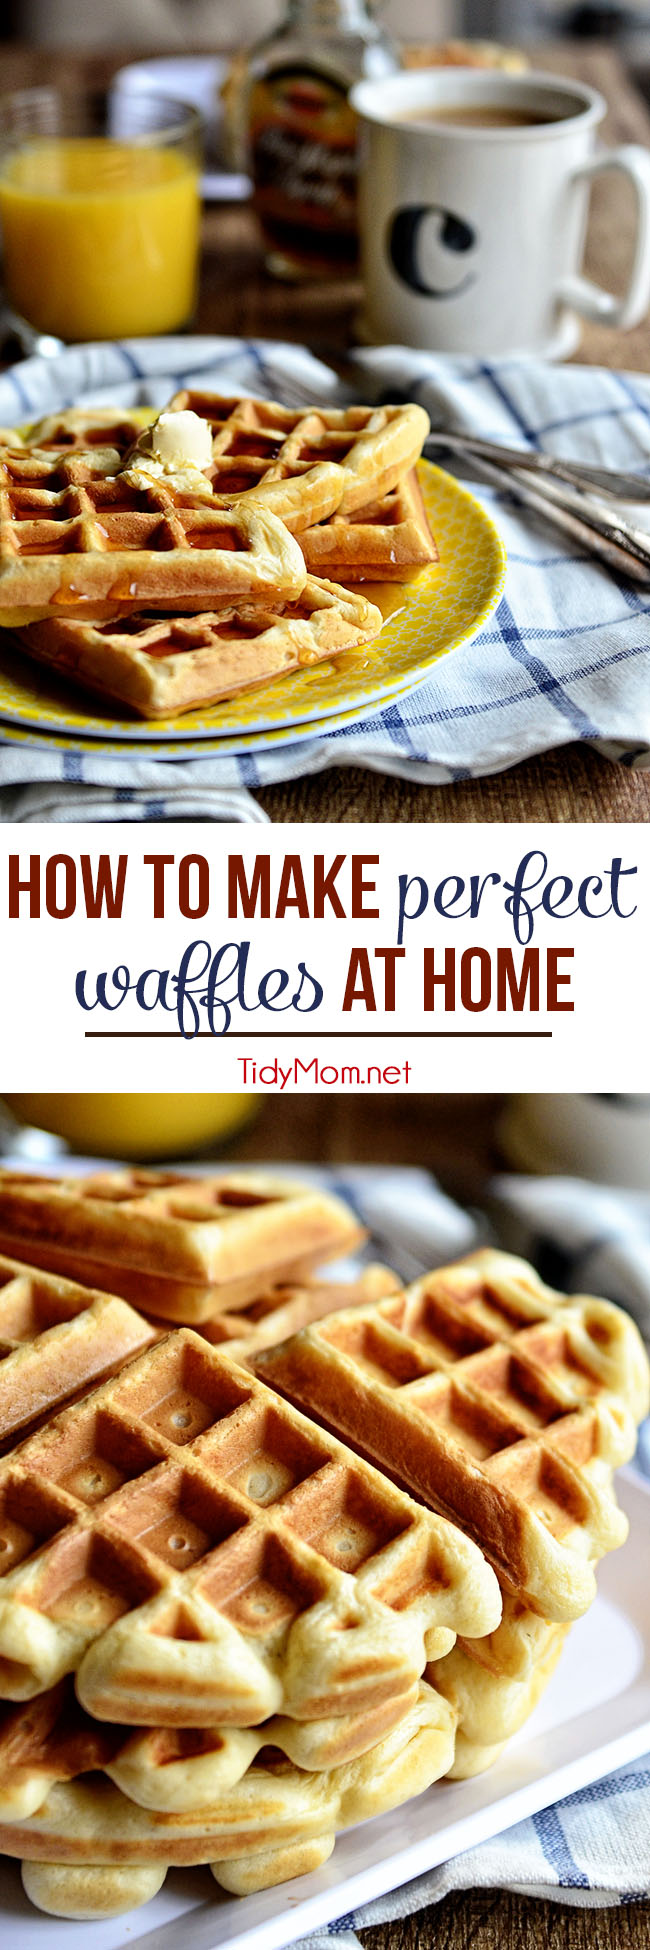 How to make PERFECT WAFFLES at home.  Tips, tricks and the secret ingredient for crispy outside and fluffy inside!  TidyMom.net: